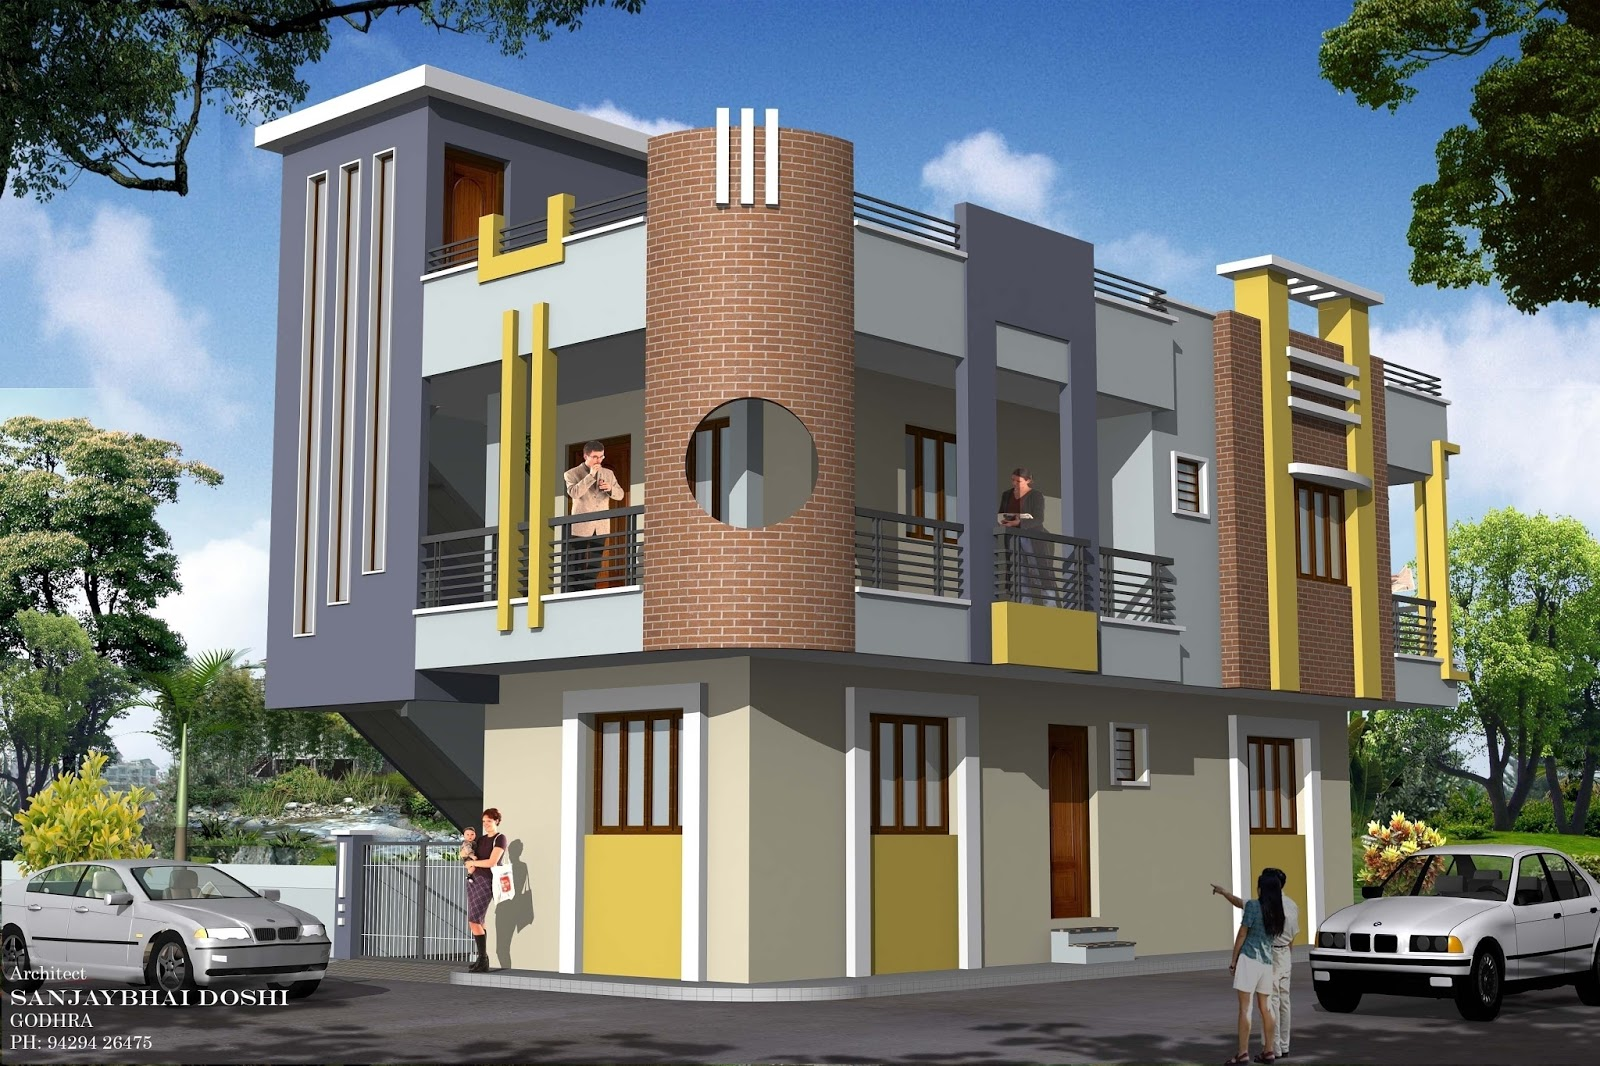 Sweet home design and cute house design rachana architect for Cute house design